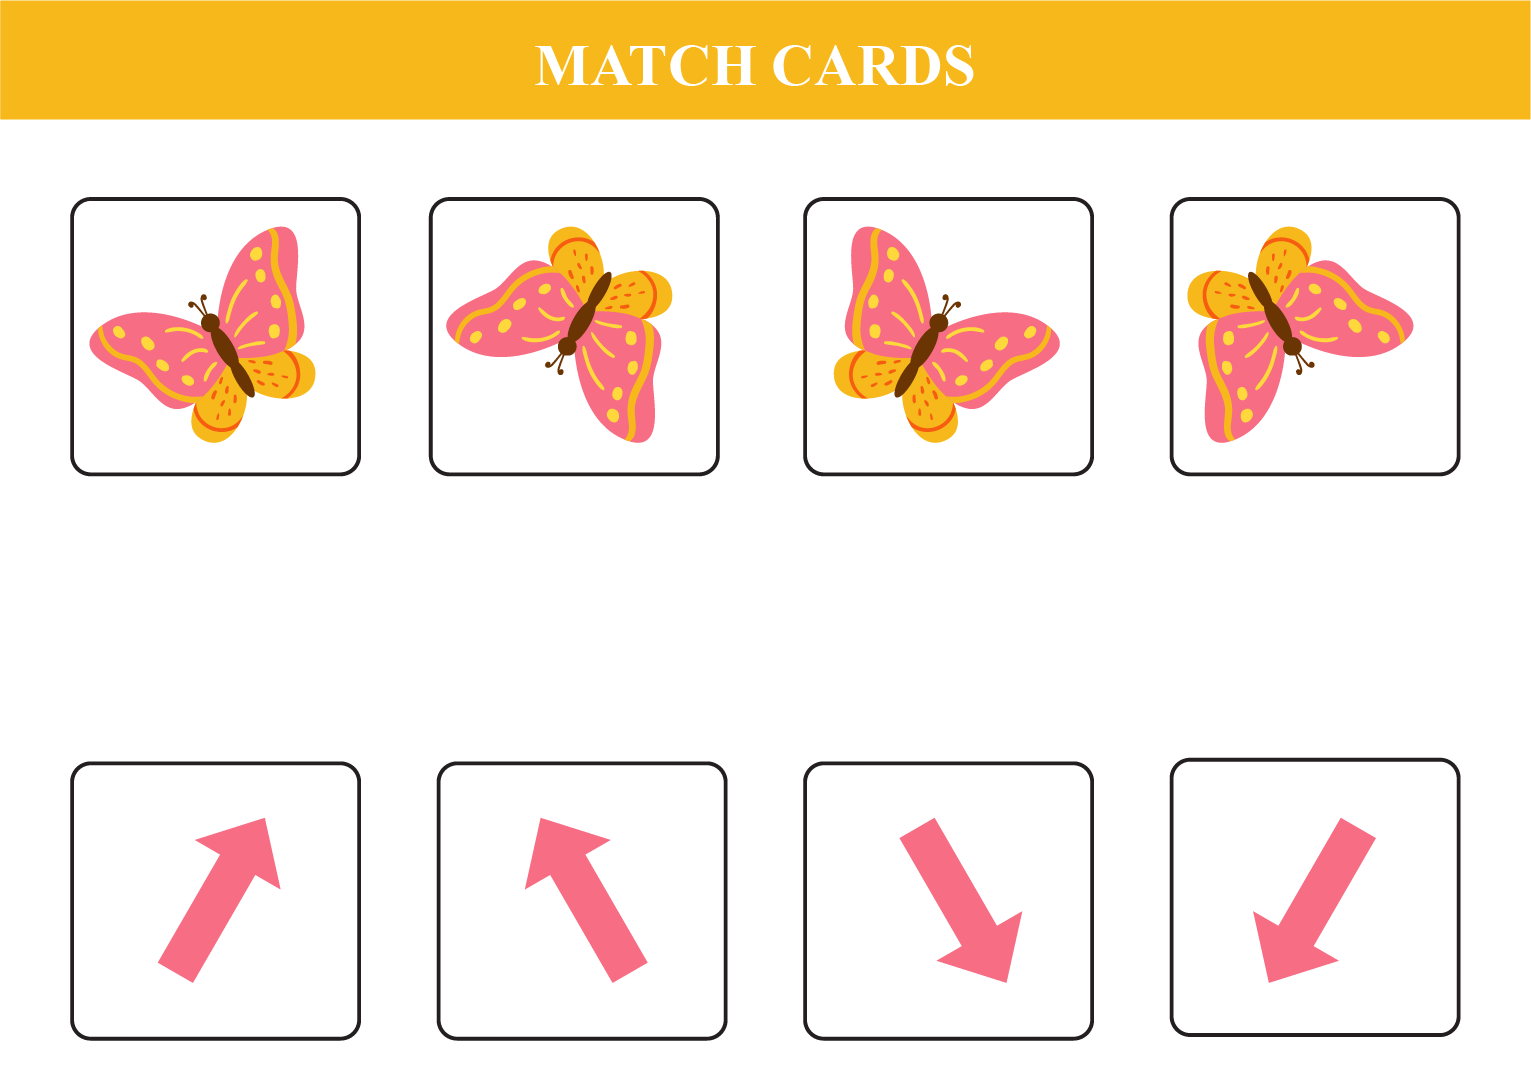 match according to the direction